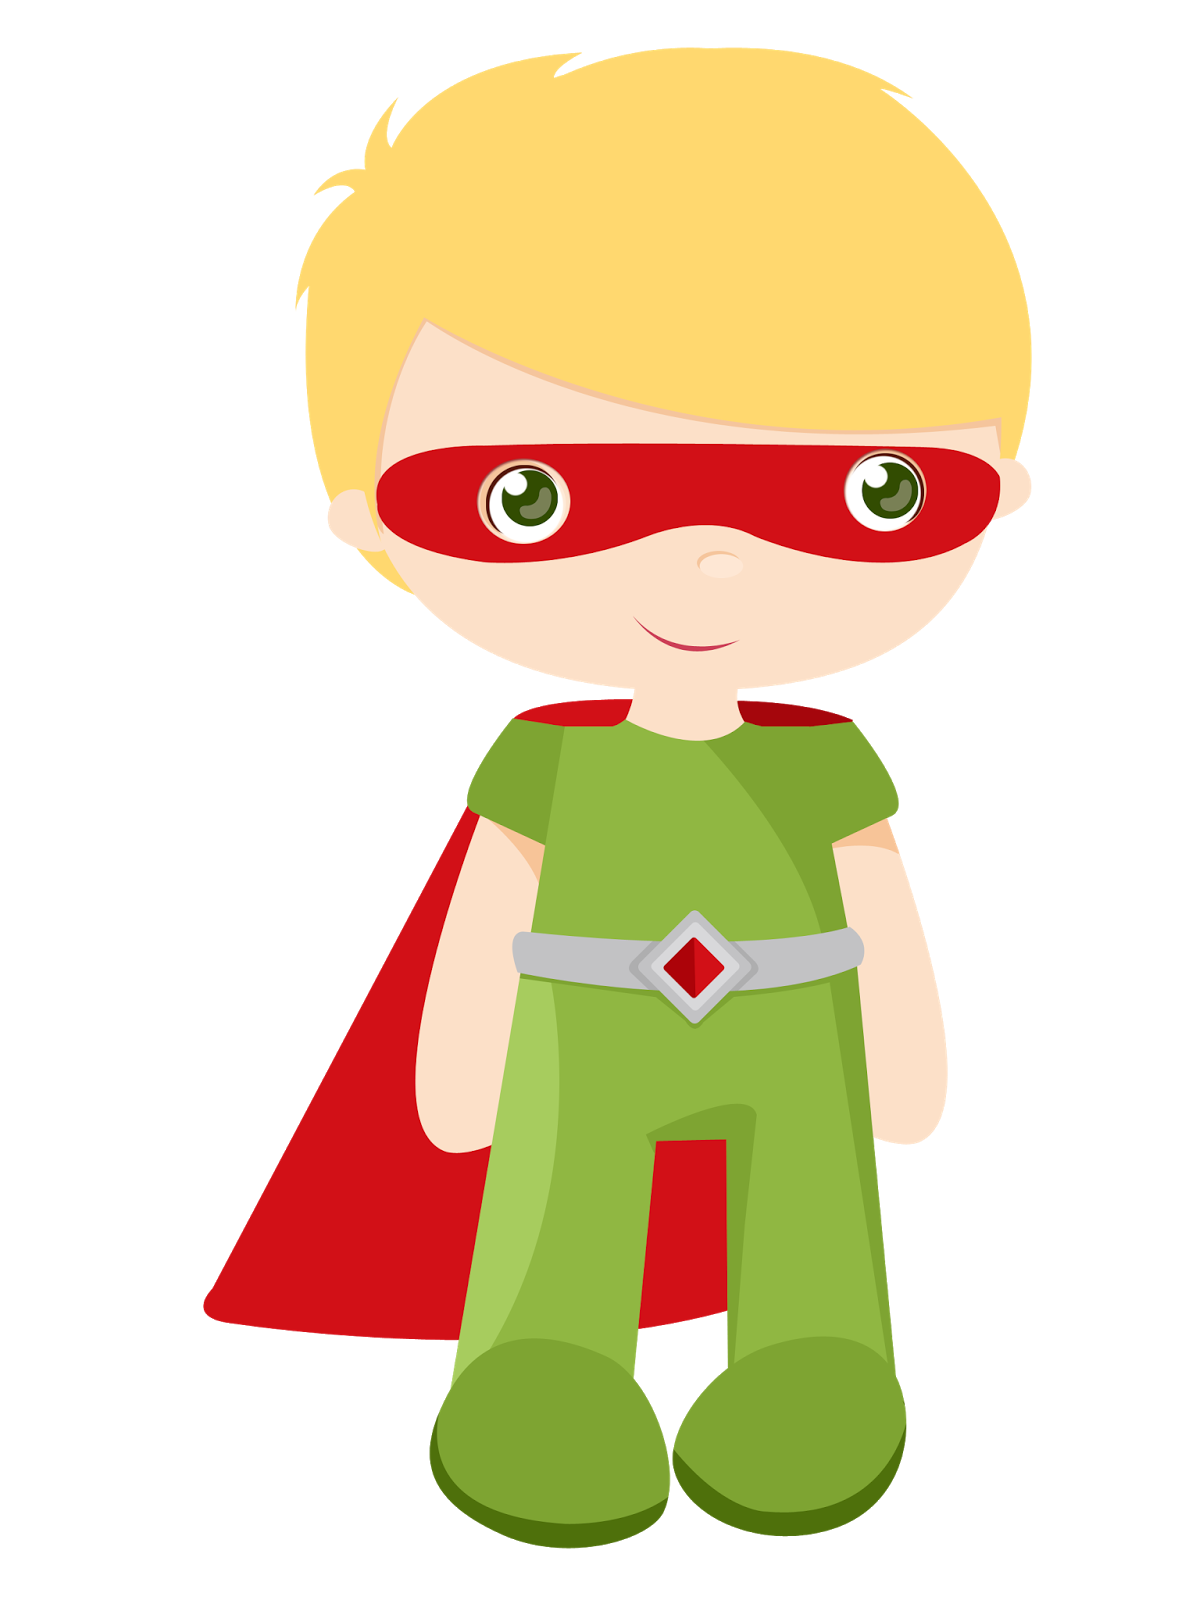 Kids dressed as Superheroes Clipart. - Oh My Fiesta! for Geeks